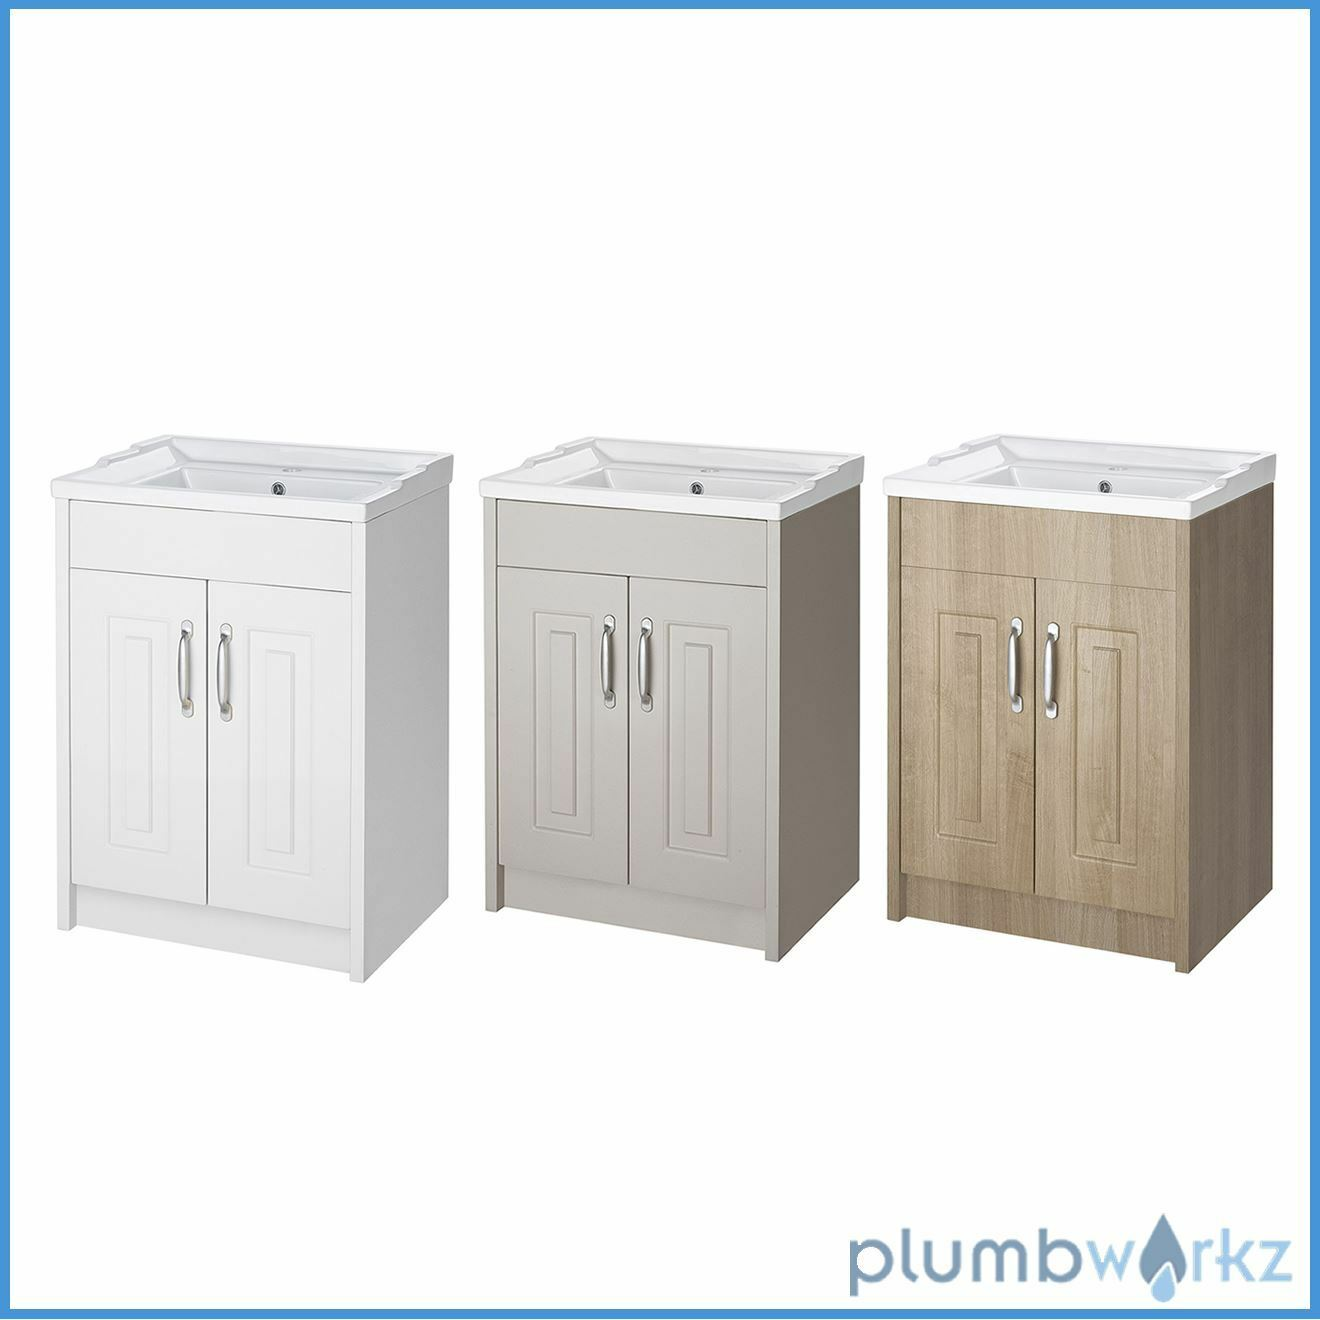 Bathroom traditional cabinet basin vanity unit cabinet for Bathroom cabinets ebay australia